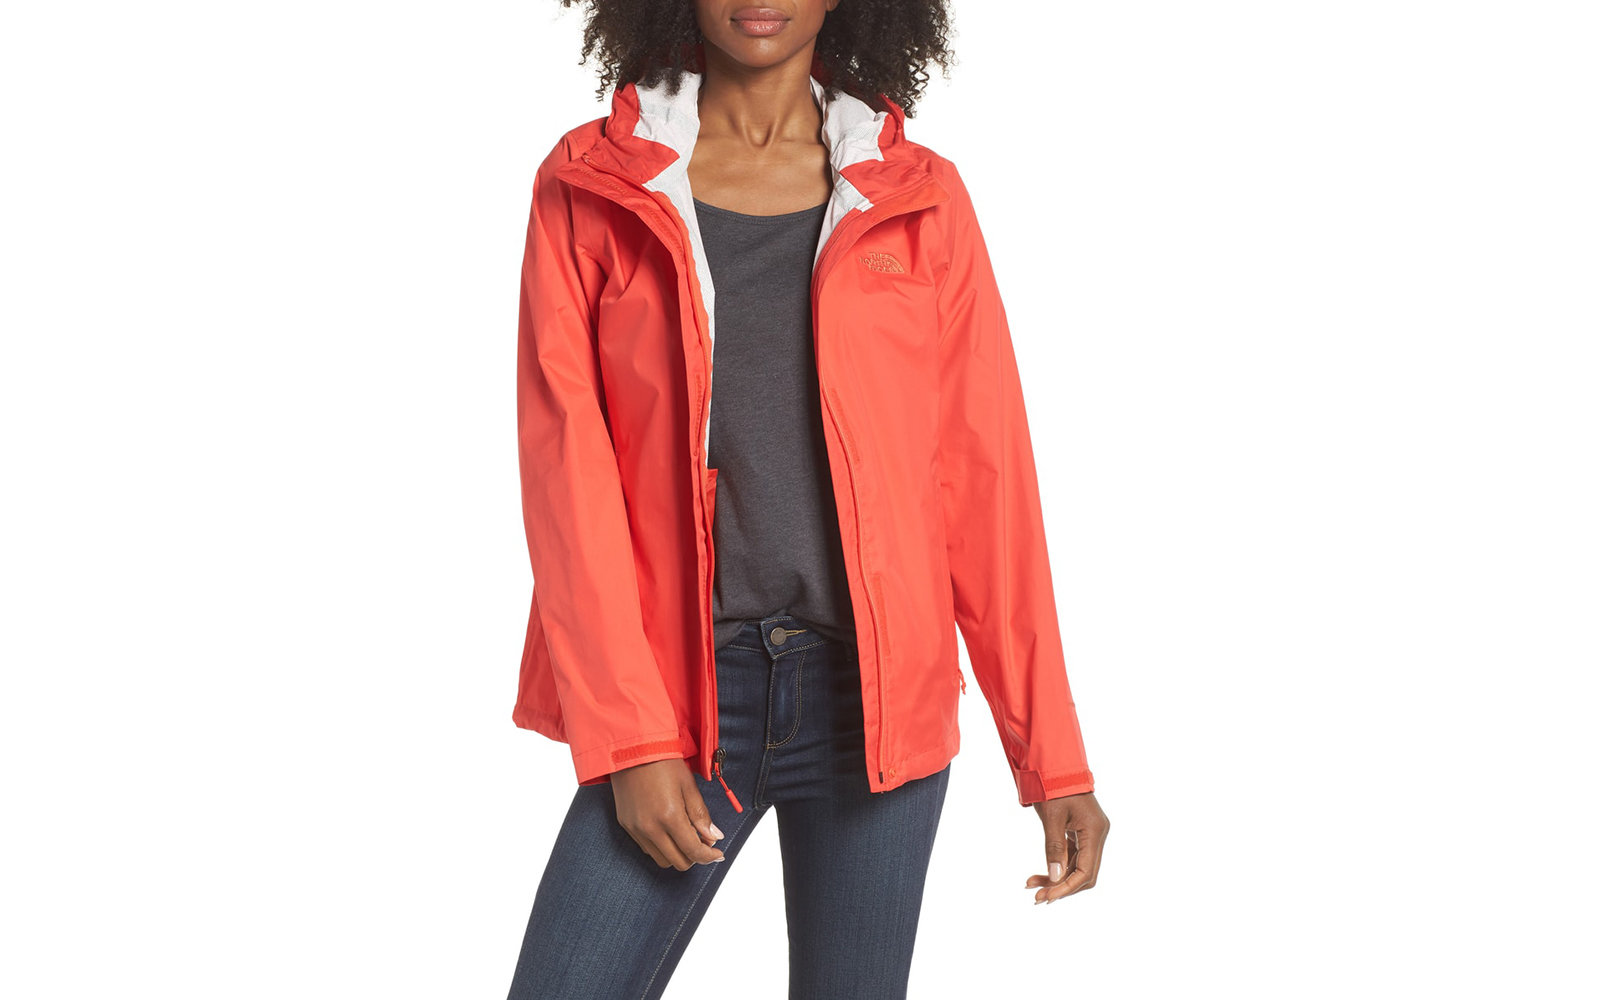 b39745d030e12 14 Best Women's Rain Jackets, According to Customers | Travel + Leisure